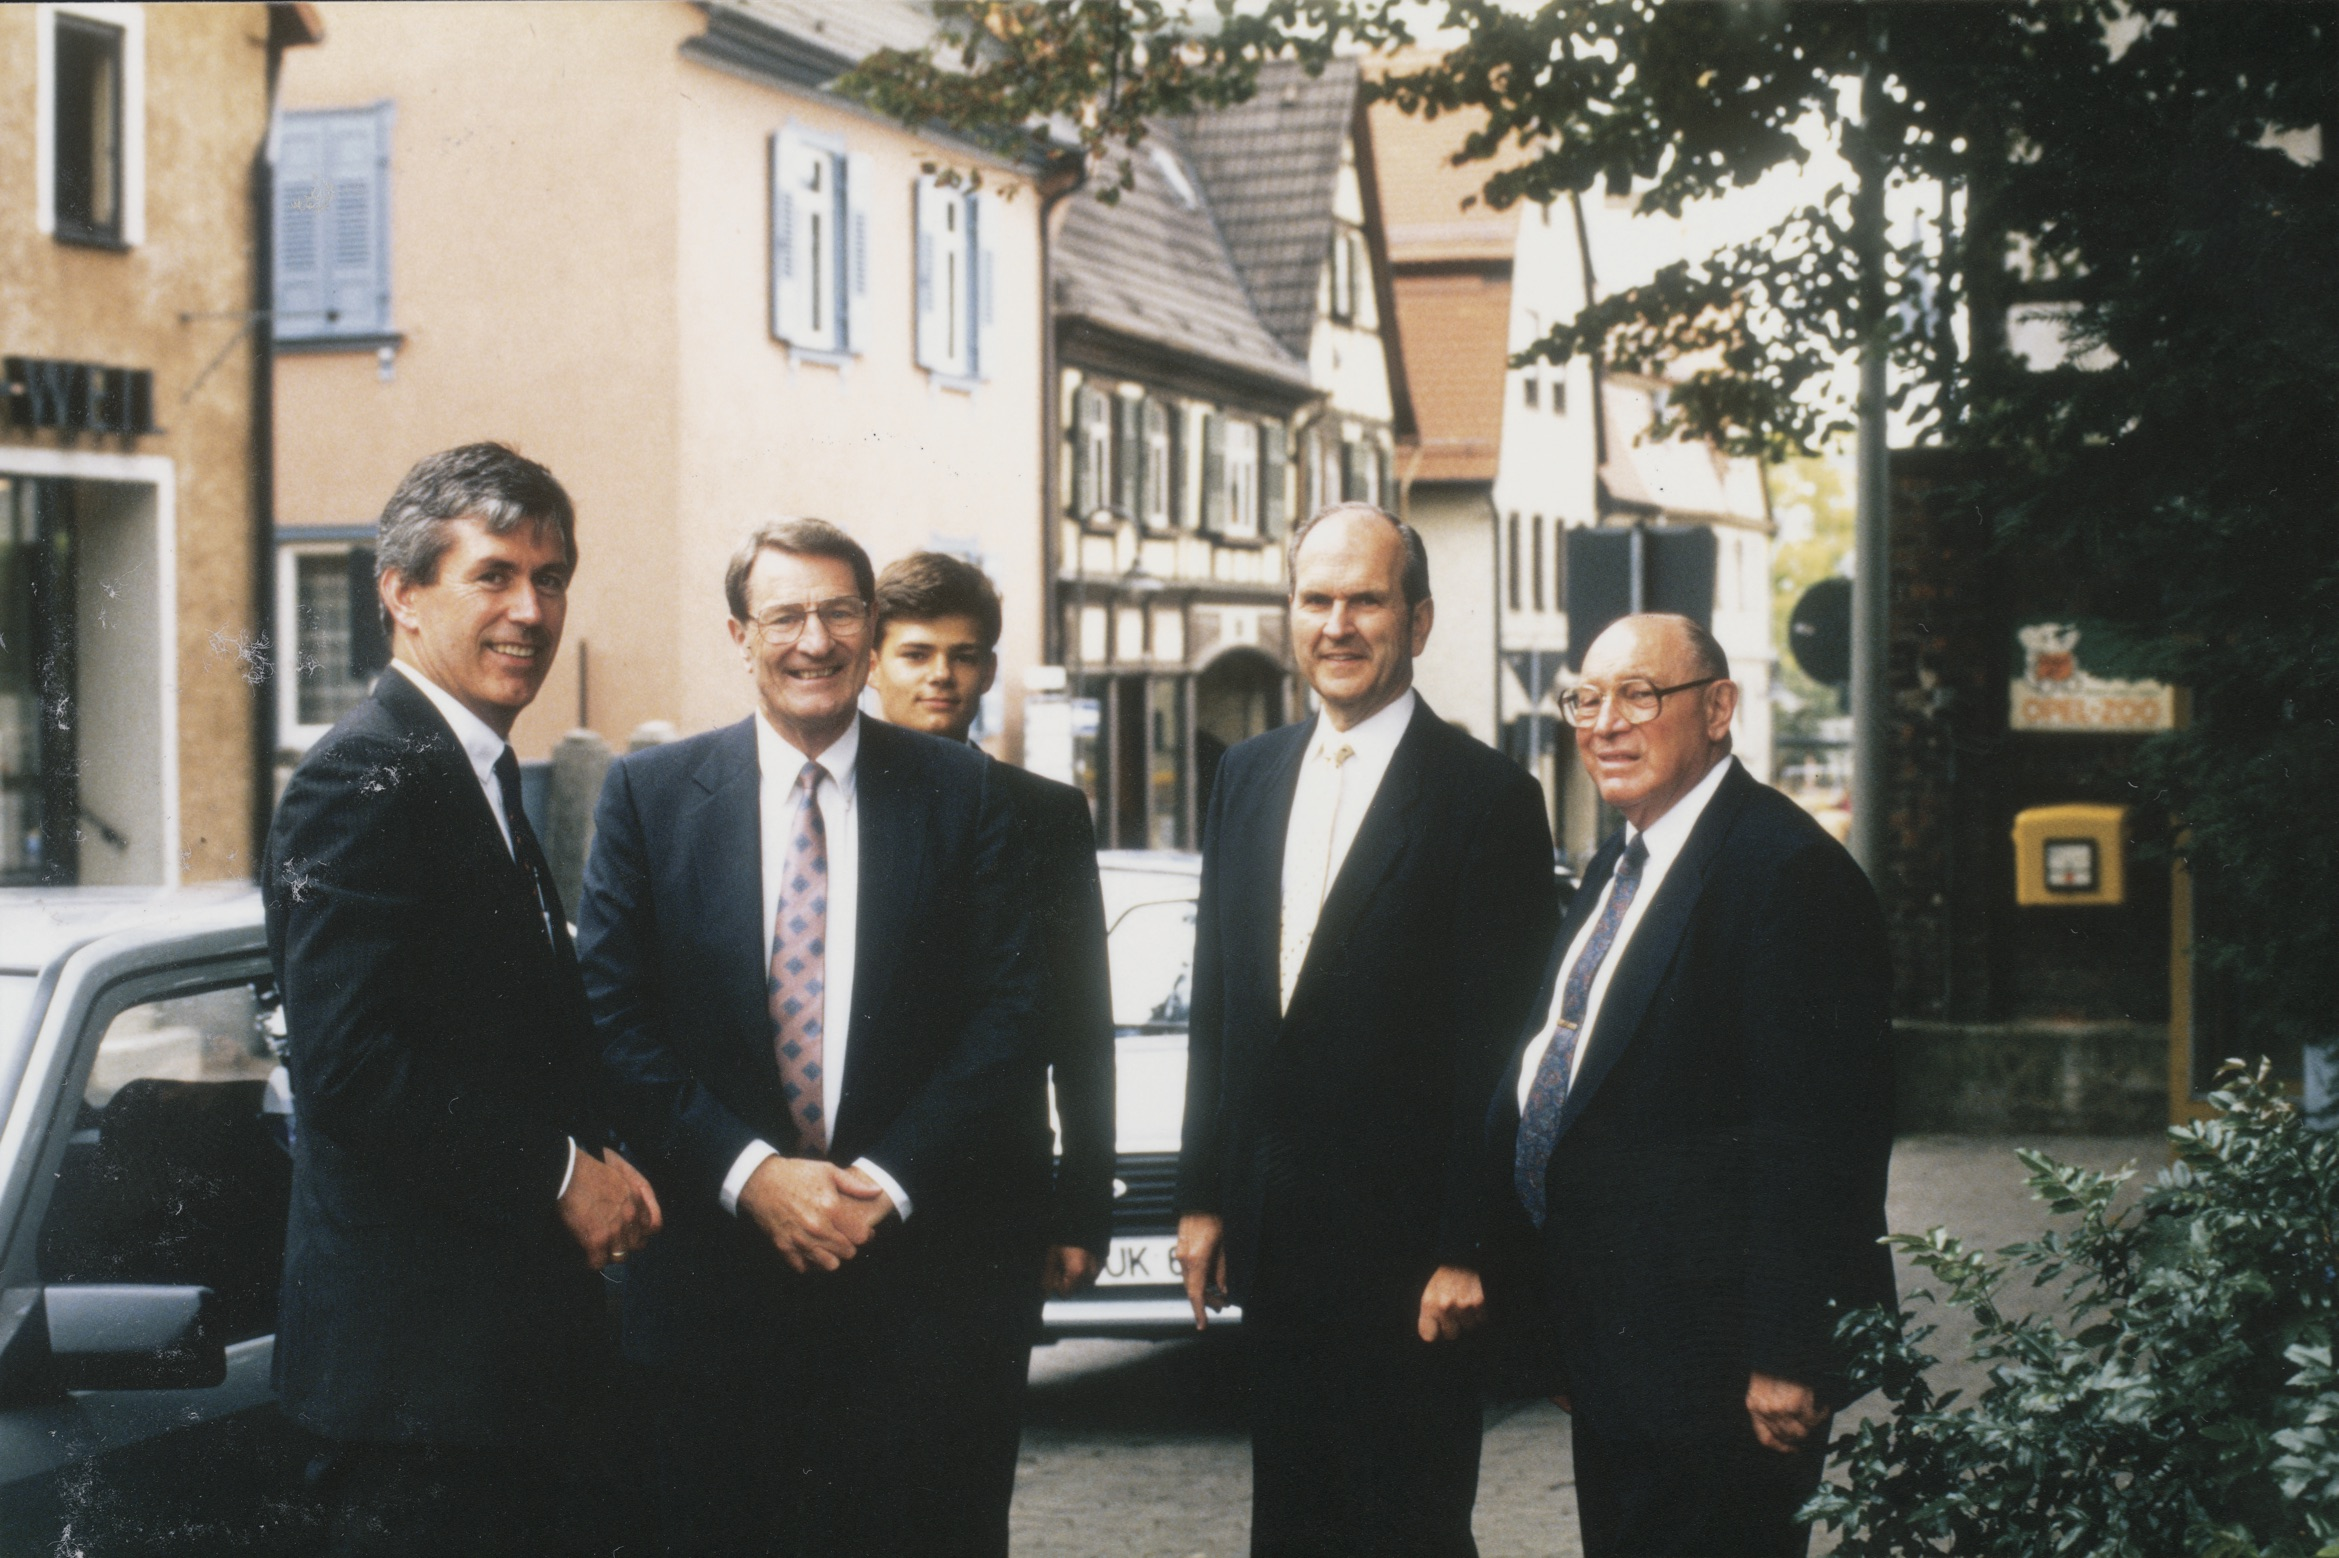 Dieter F. Uchtdorf, who was serving as the Frankfurt temple committee chair, and his son, Guido, stand with Elder Neal A. Maxwell, Elder Russell M. Nelson and Elder Joseph B. Wirthlin during the Frankfurt Germany Temple open house in 1987.